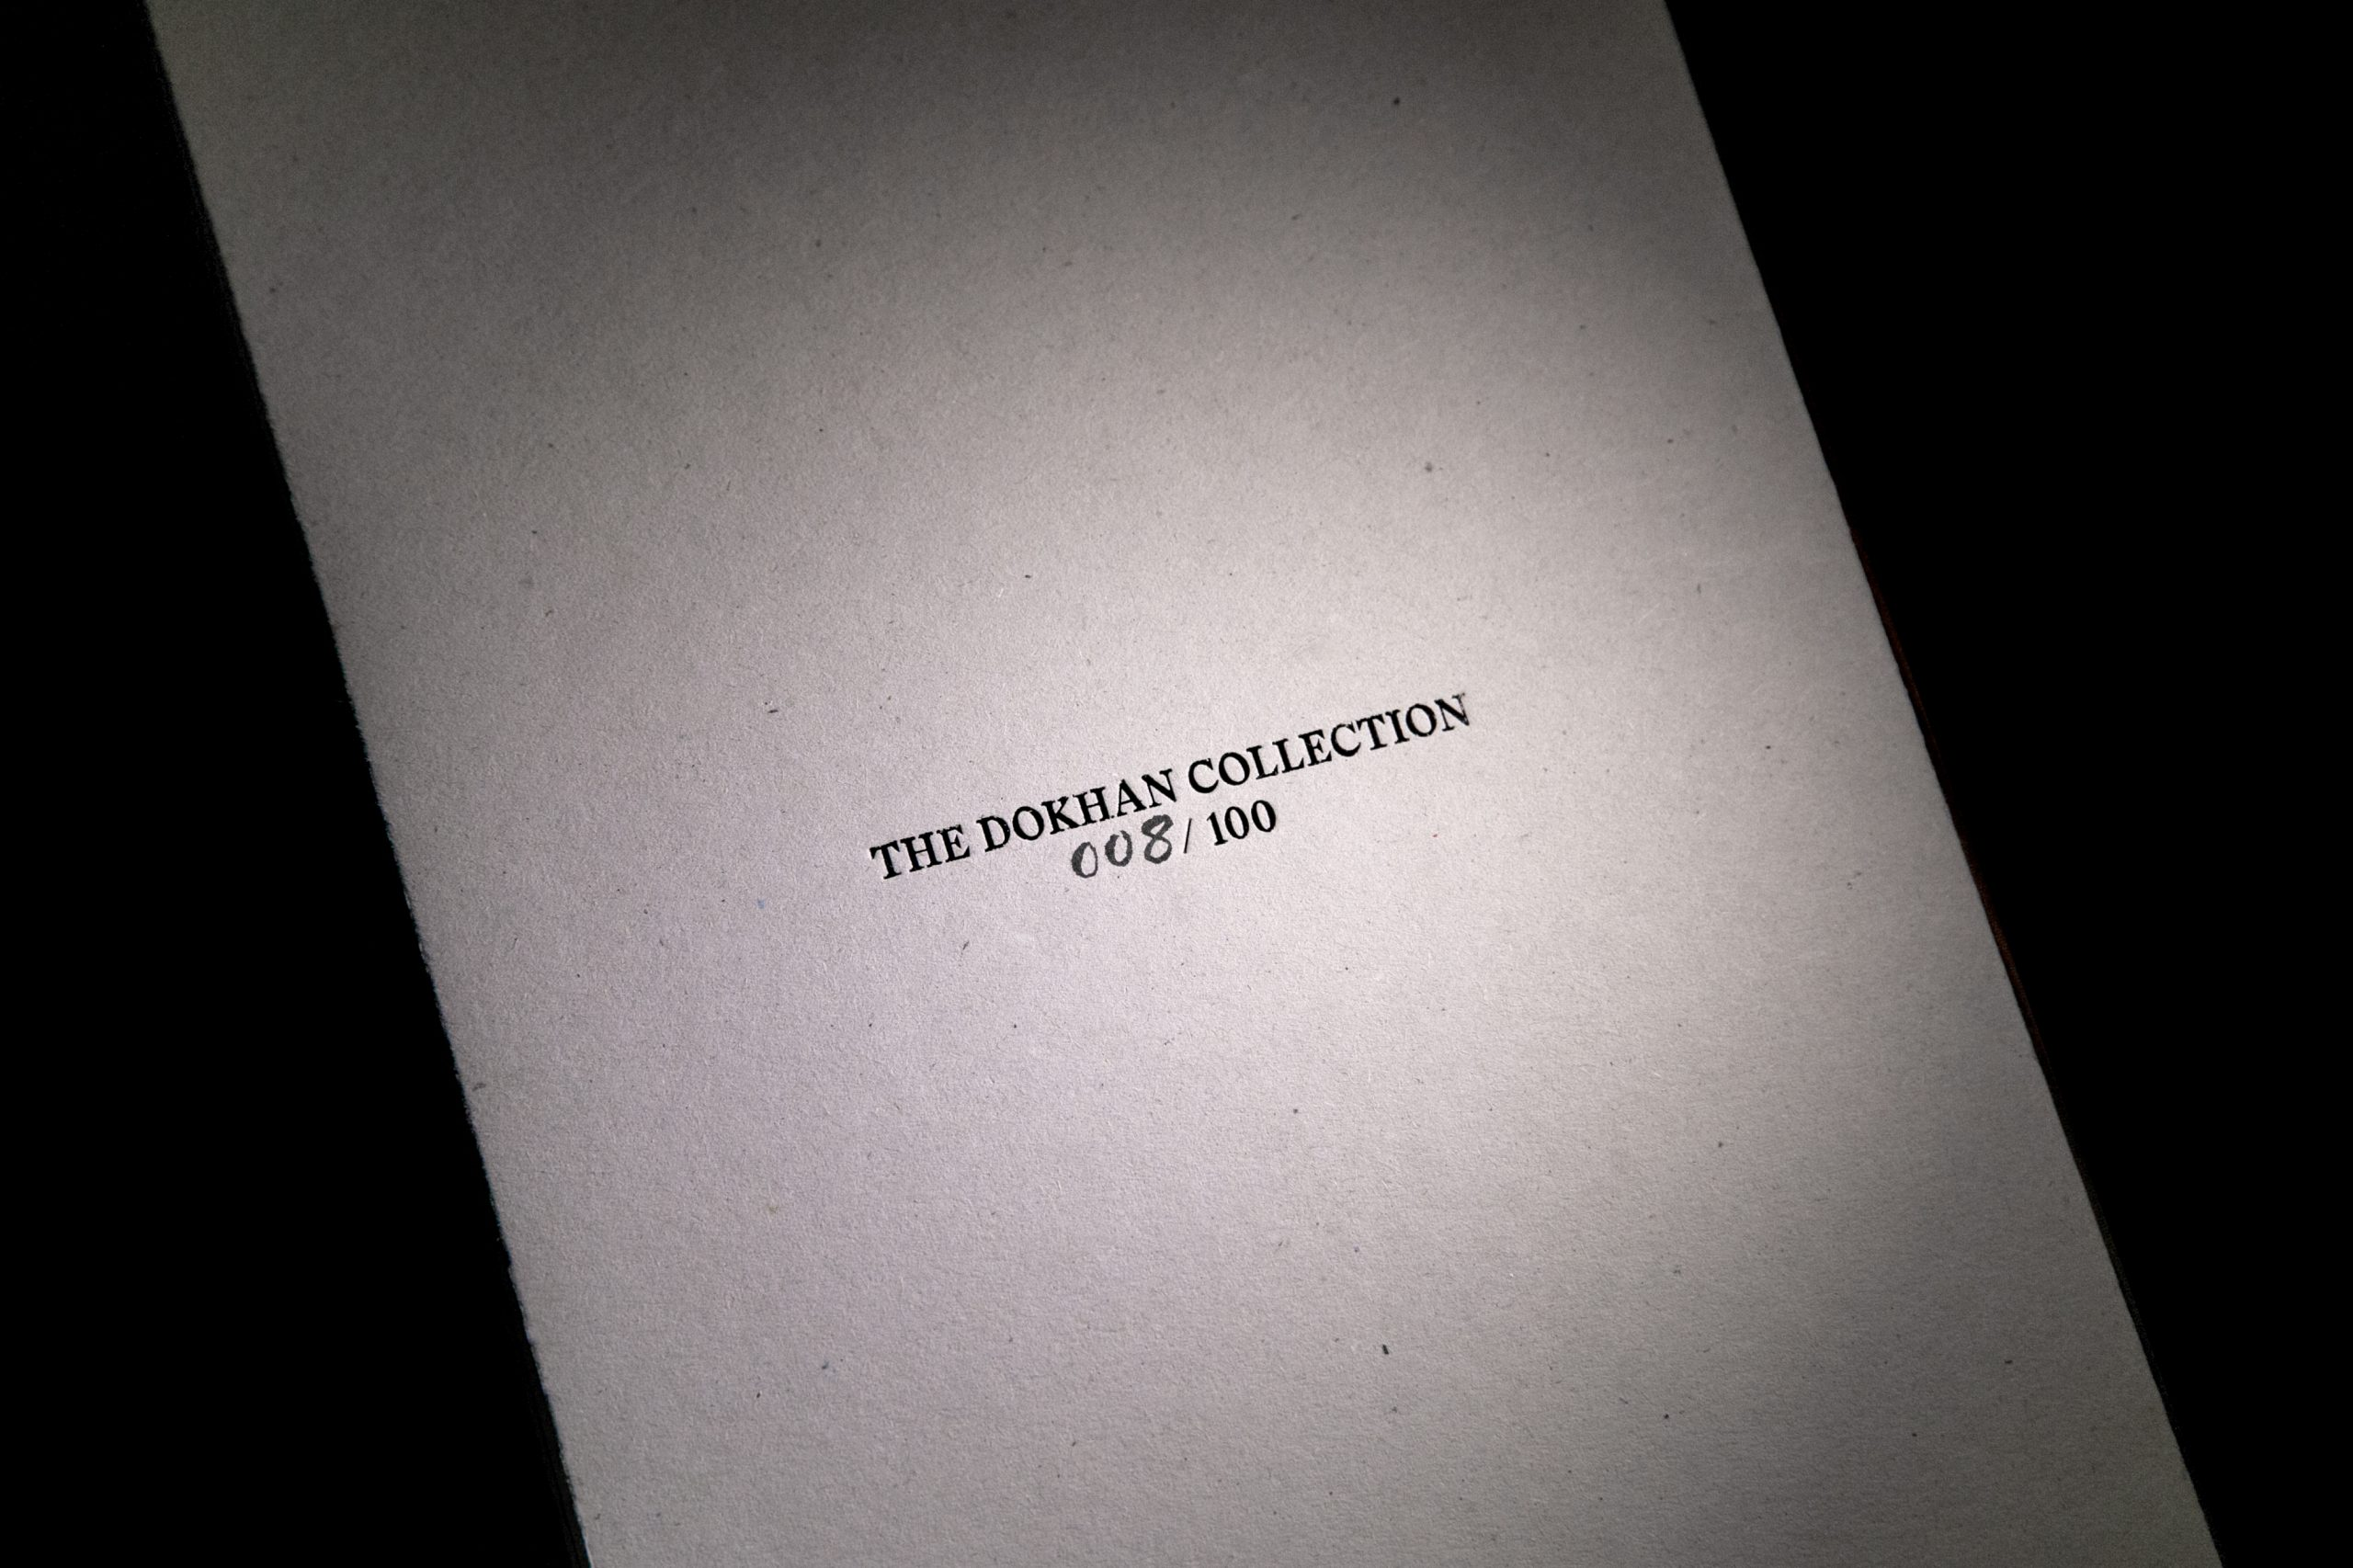 Book for The Dokhan Collection